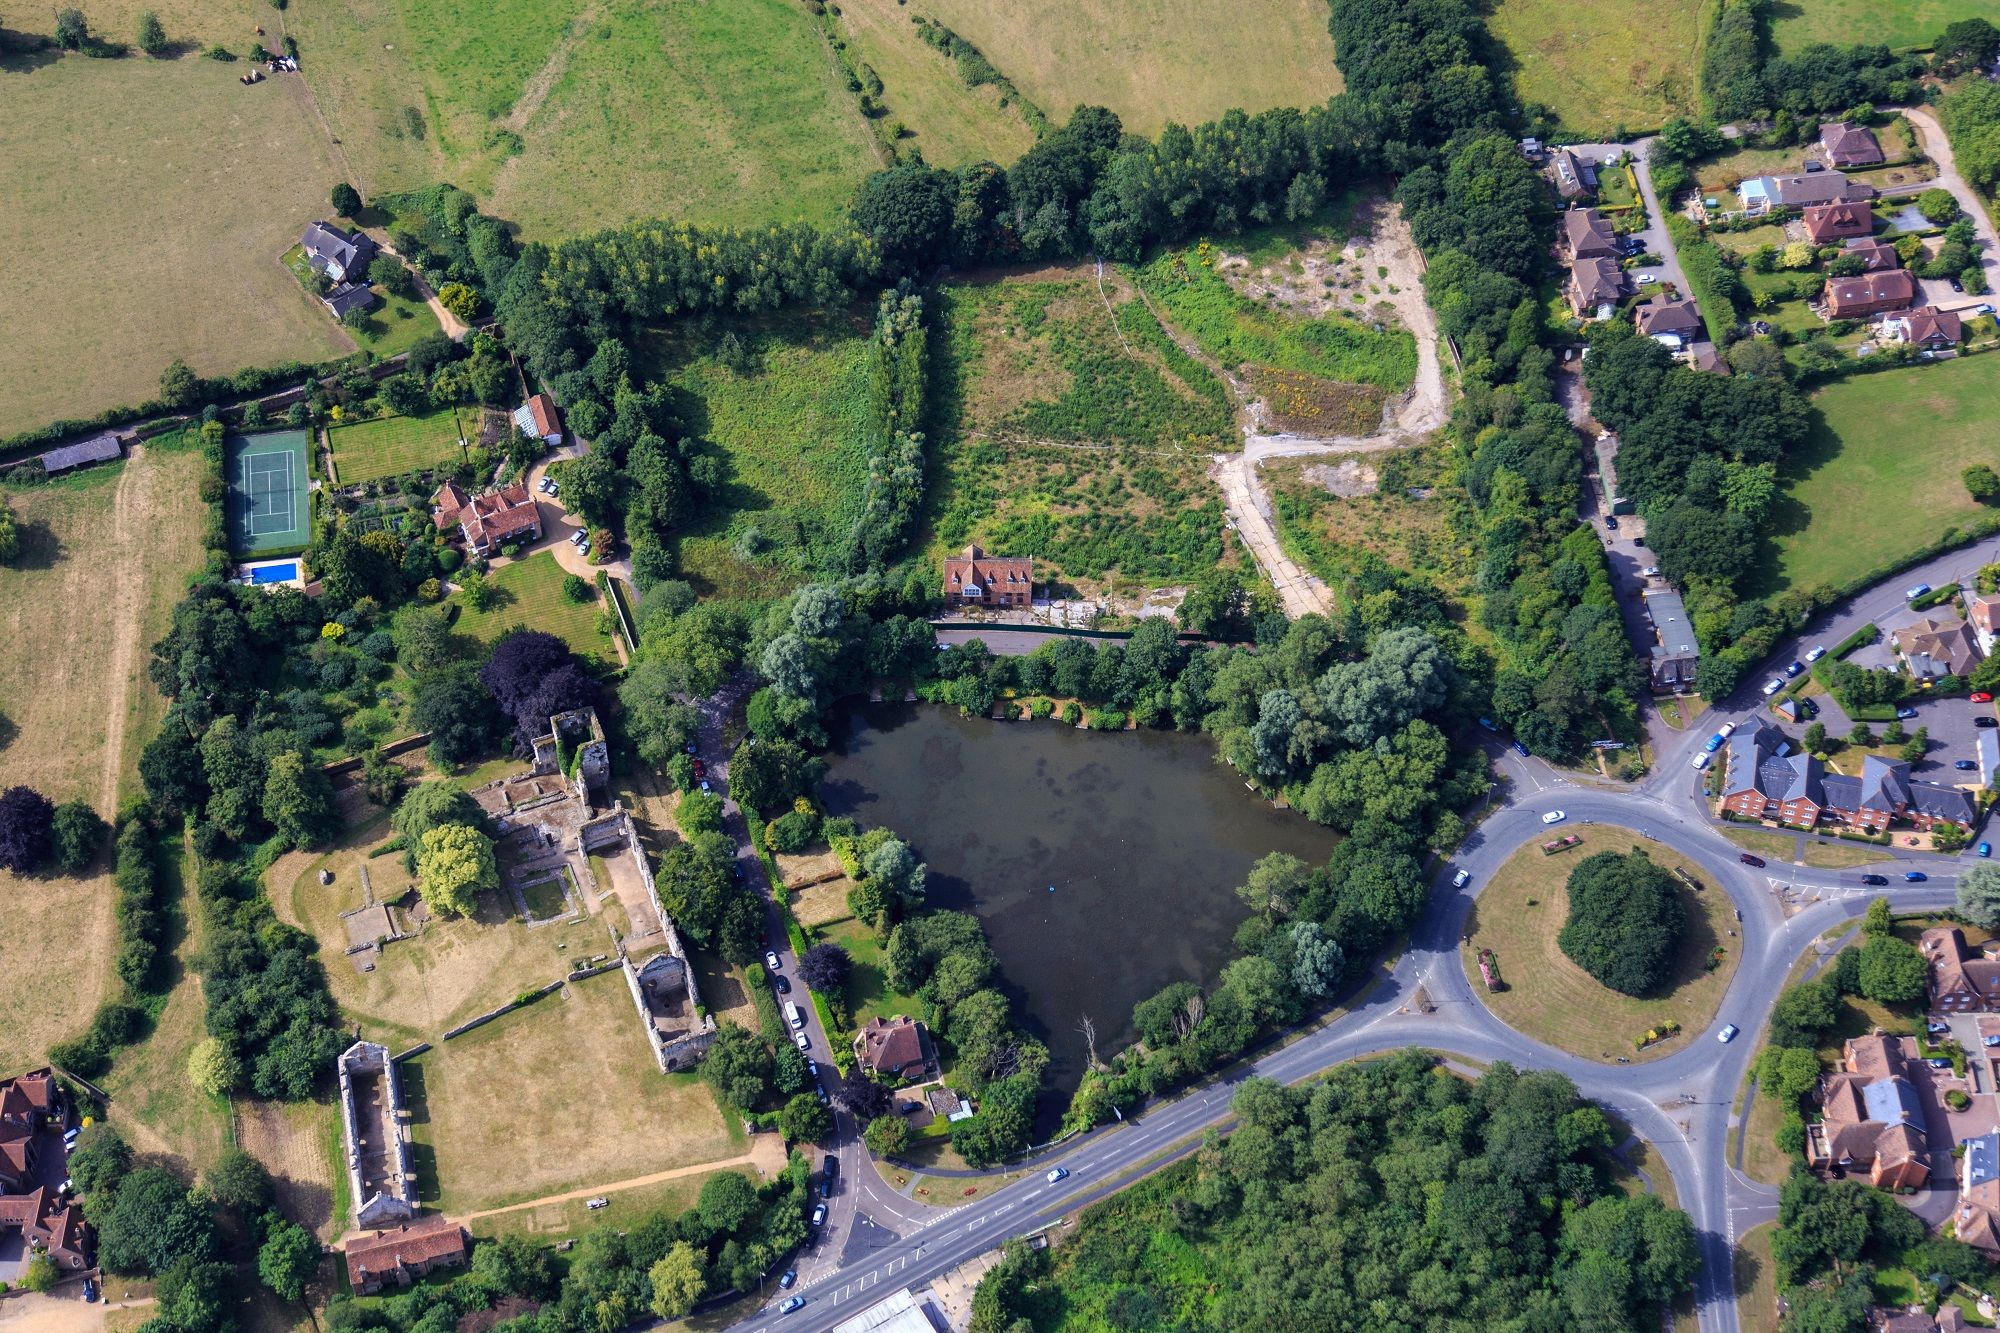 Aerial view of the Abbey Mill site